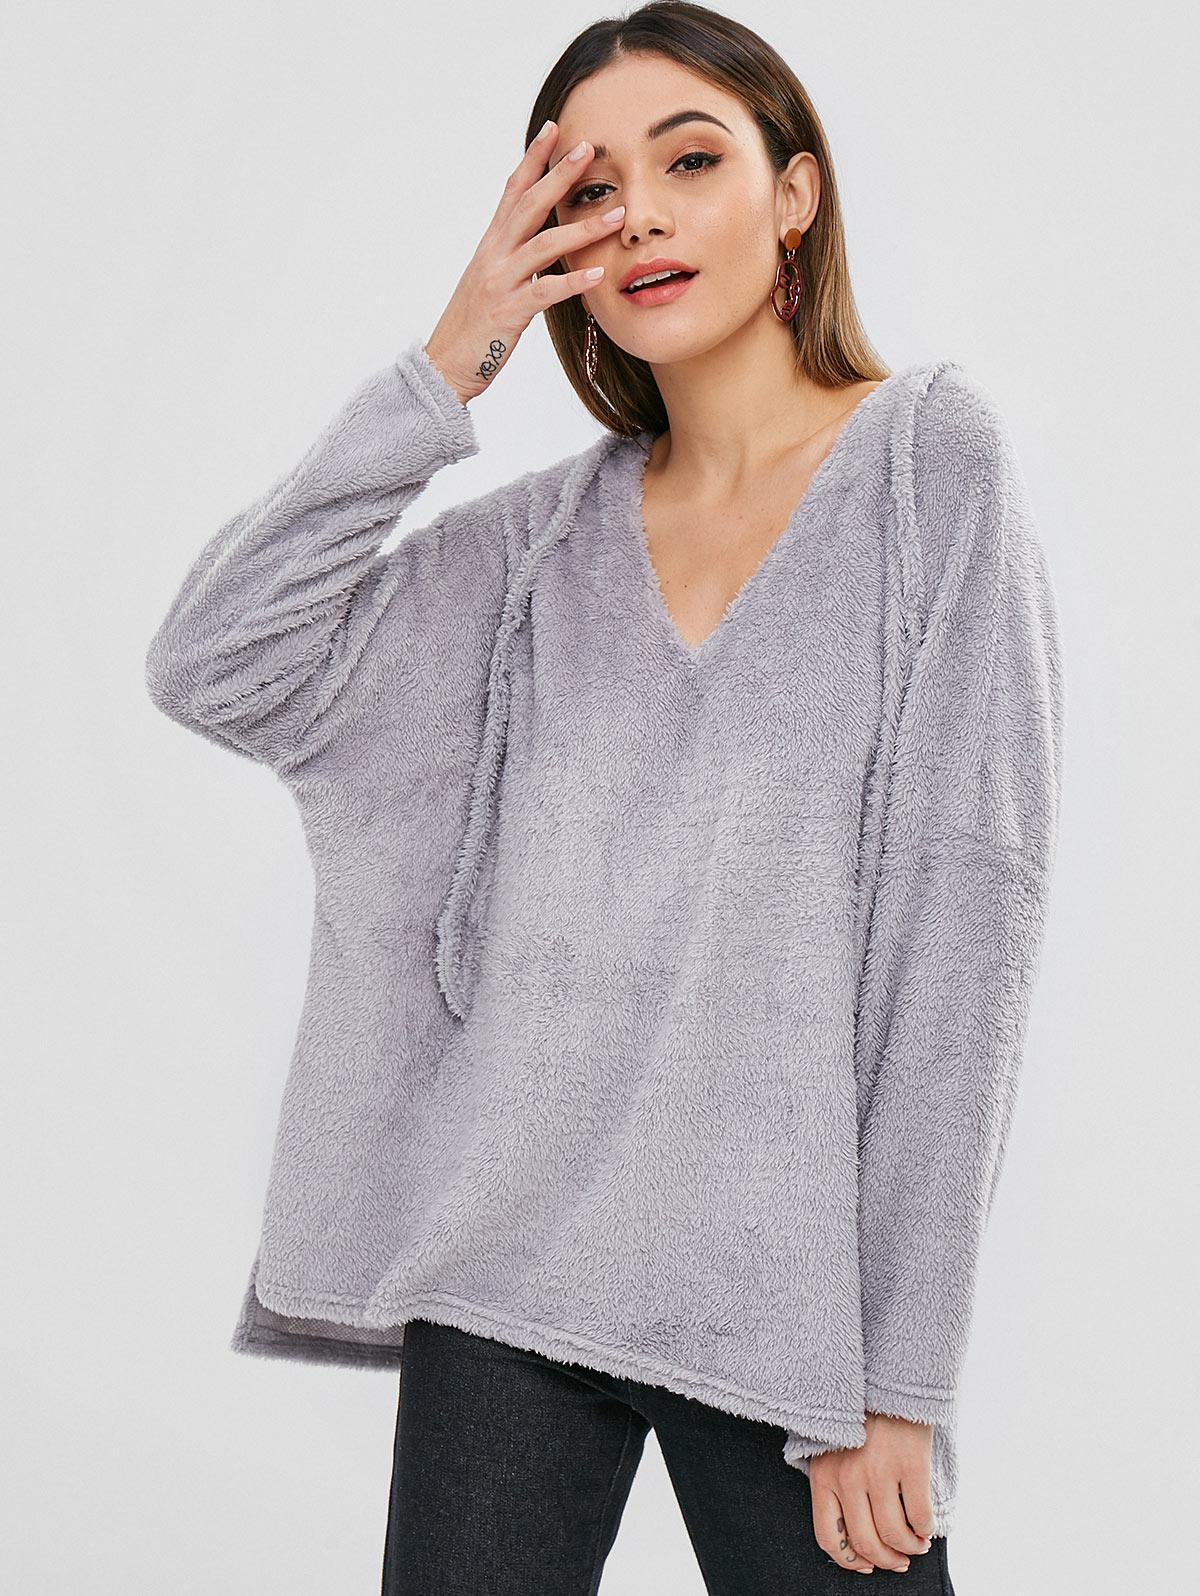 ZAFUL Side Slit Fluffy High Low Hoodie фото